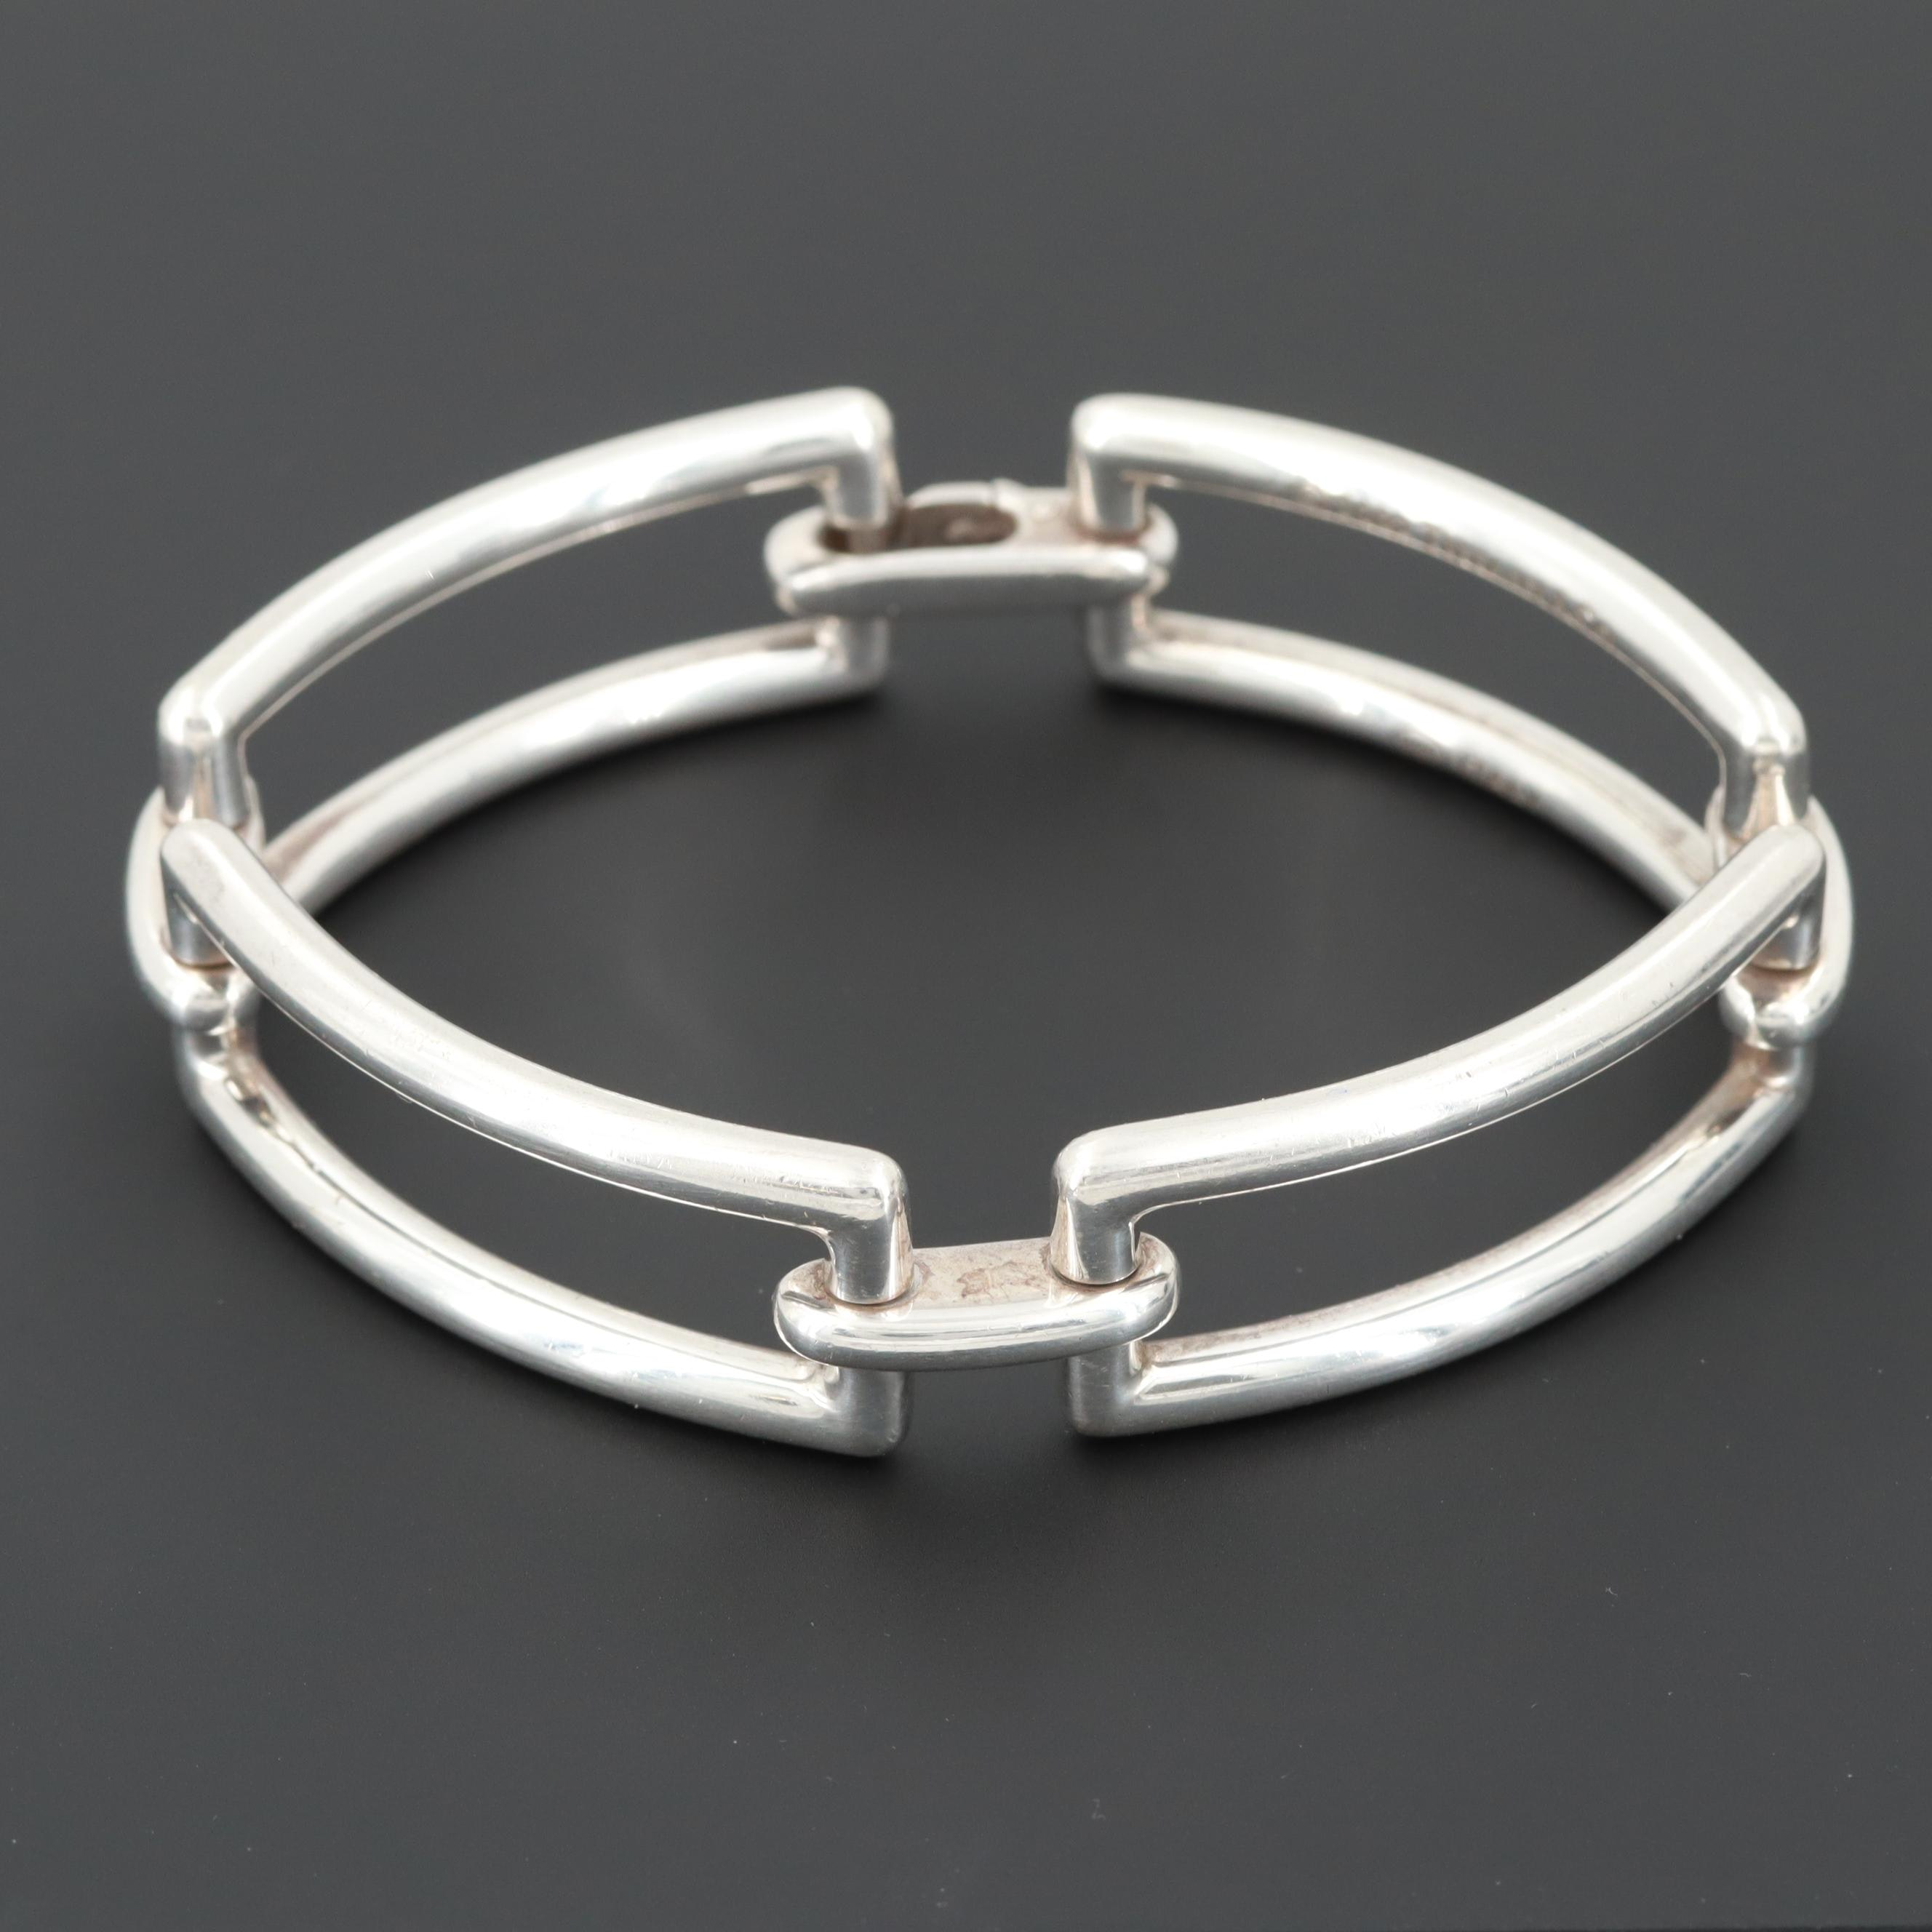 Tiffany & Co. Sterling Silver Modern Rectangle Gate Bracelet